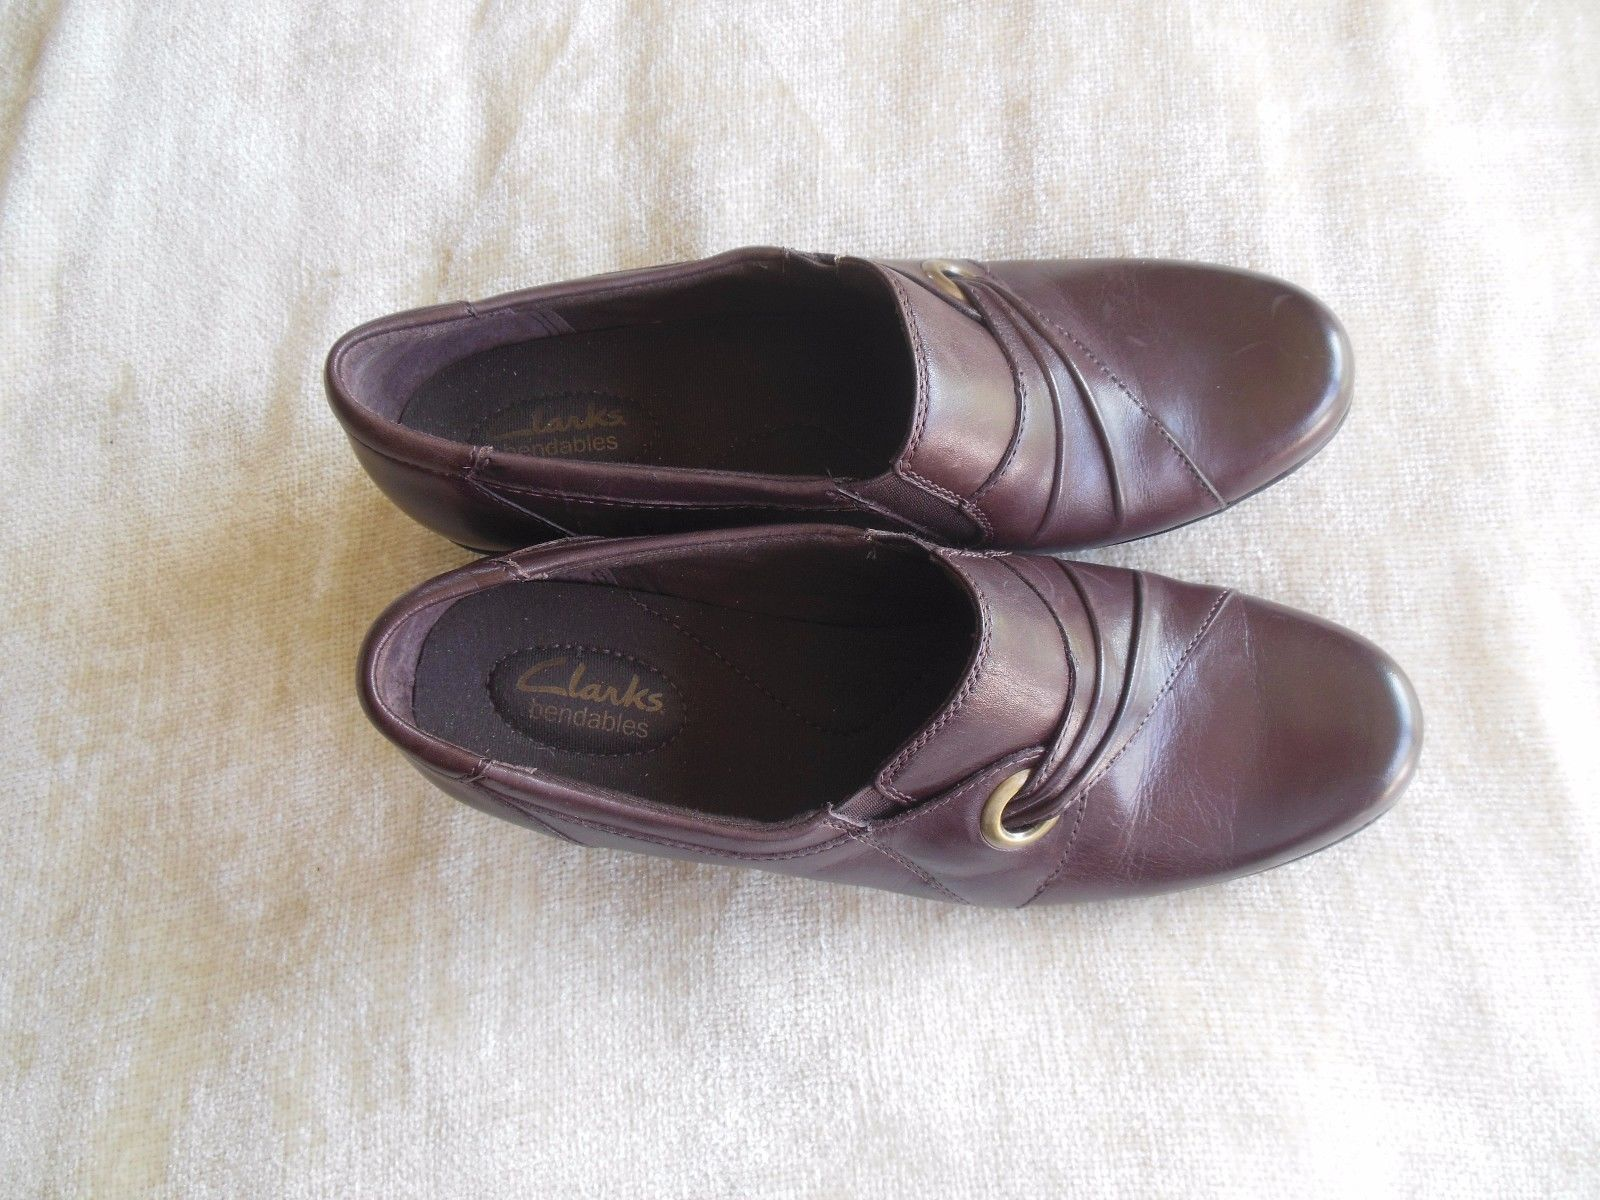 0d555f478f8 S l1600. S l1600. Previous. Clarks Bendables Women s Brown Leather Slip On Shoes  Size 9M · Clarks Bendables ...